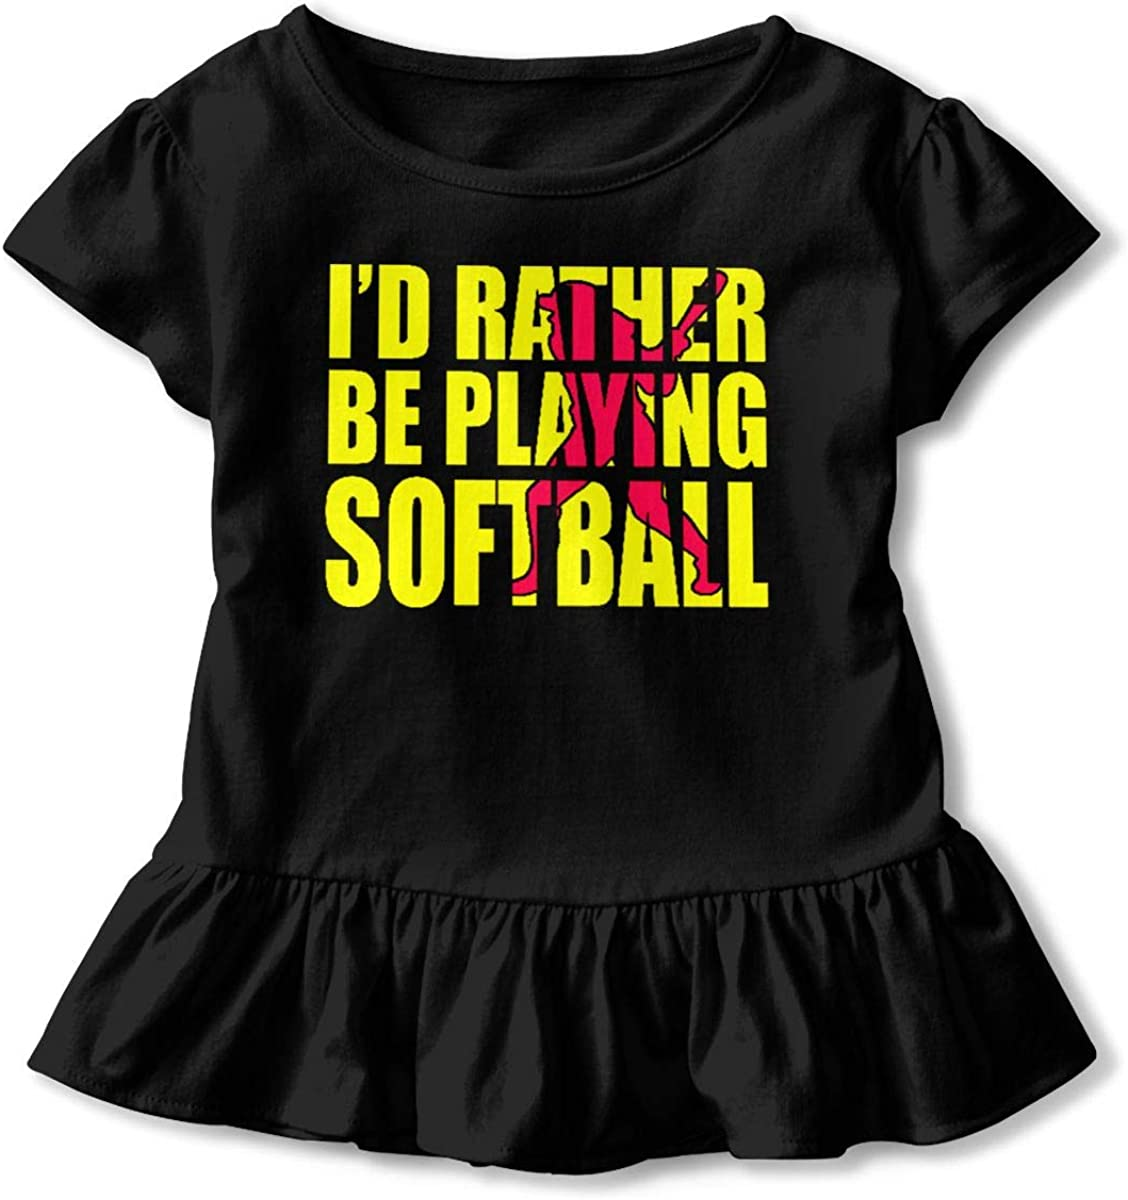 Not Available Id Rather Be Playing Softball Shirt Baby Girls Ruffles Graphic Tees for 2-6 Years Old Baby